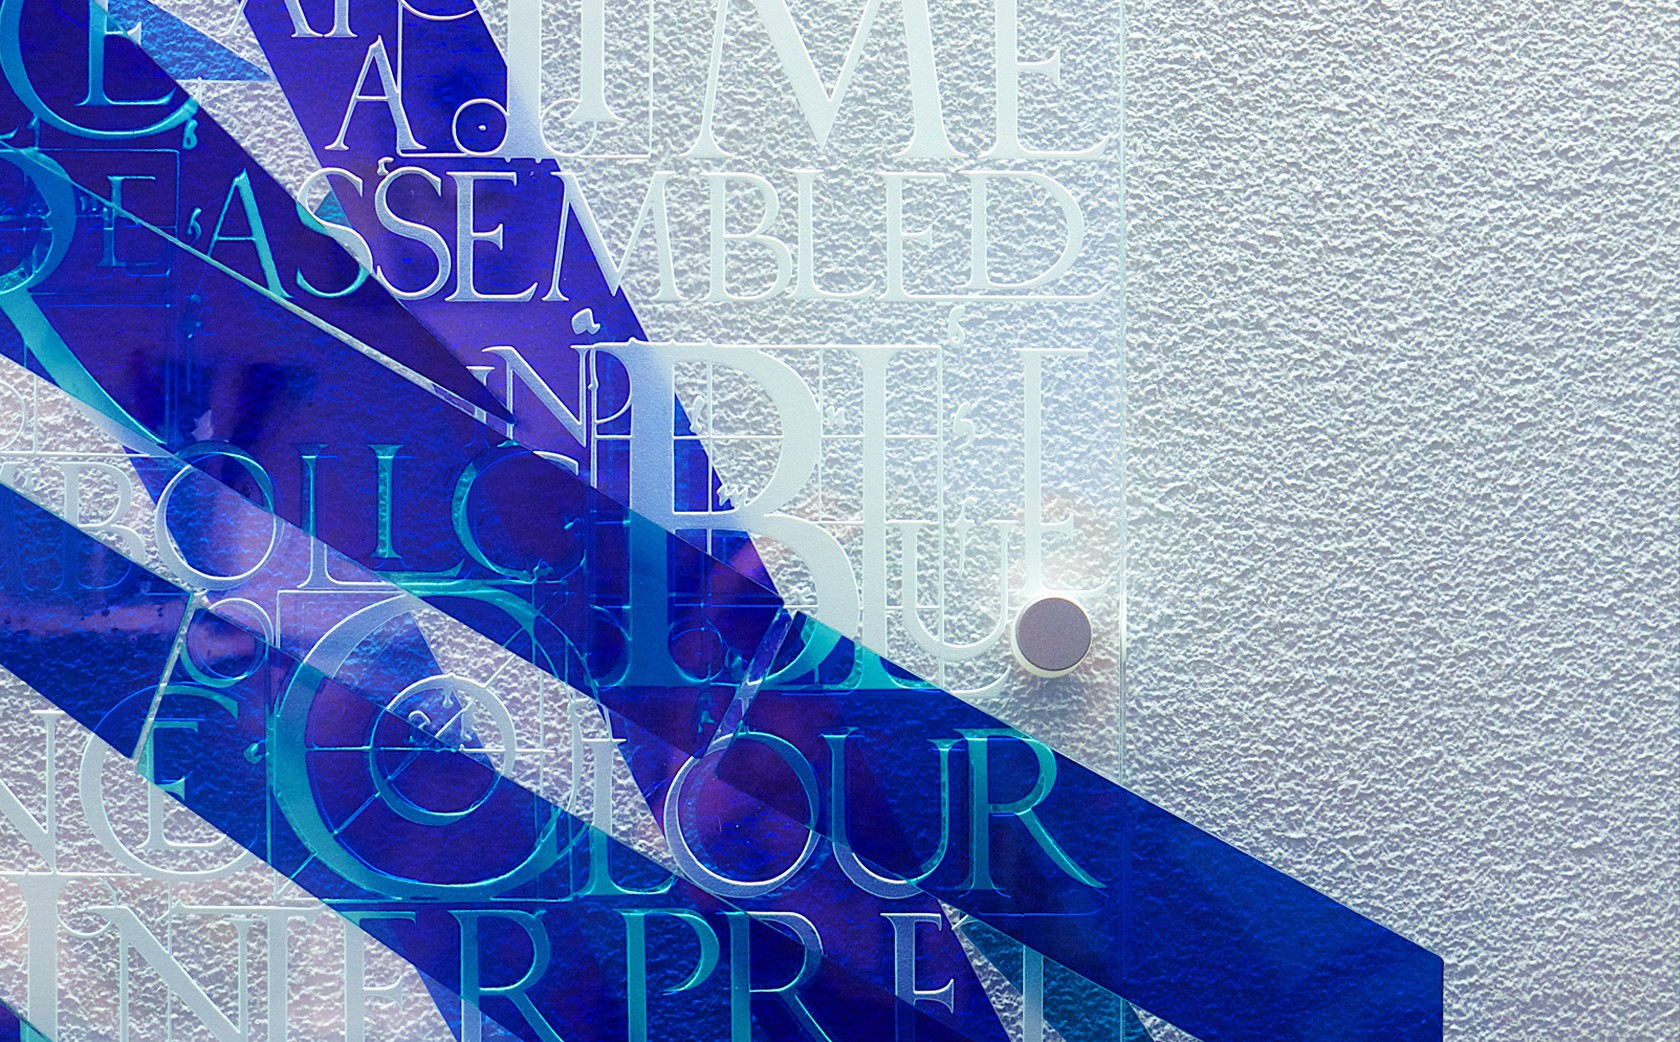 Glass Wall Sculpture Fragments of Blue by Denise Mt Basso for Vessel Gallery Notting Hill